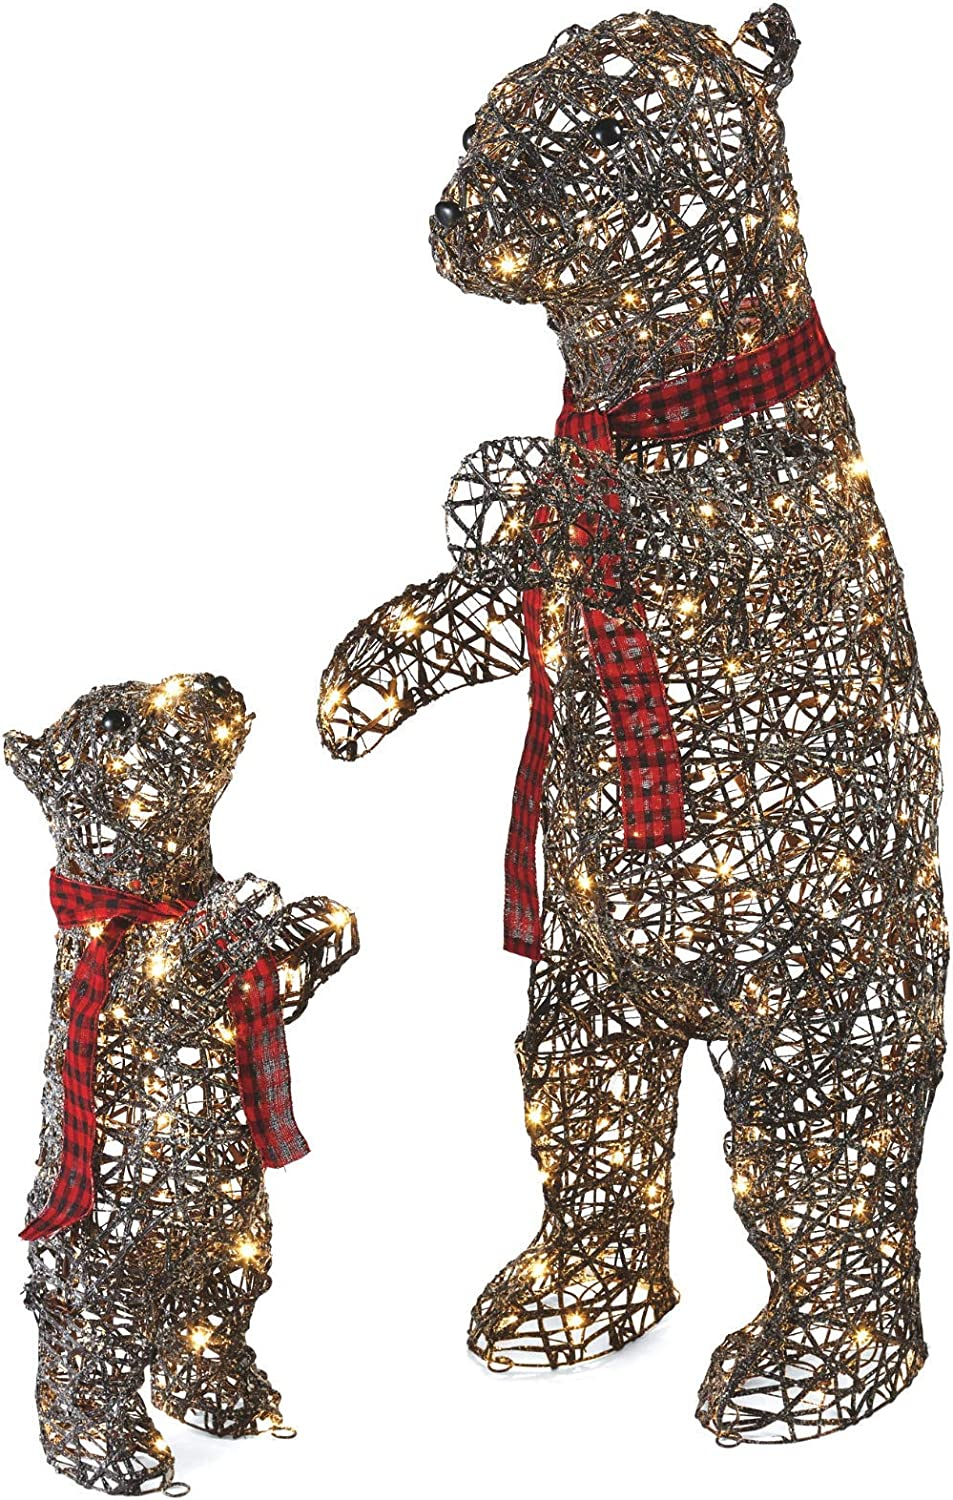 NOMA Pre-Lit Light Up Glittering Mama and Baby Bear 2-Piece Set | Christmas Holiday Lawn Decoration | 4.8ft & 2.8ft